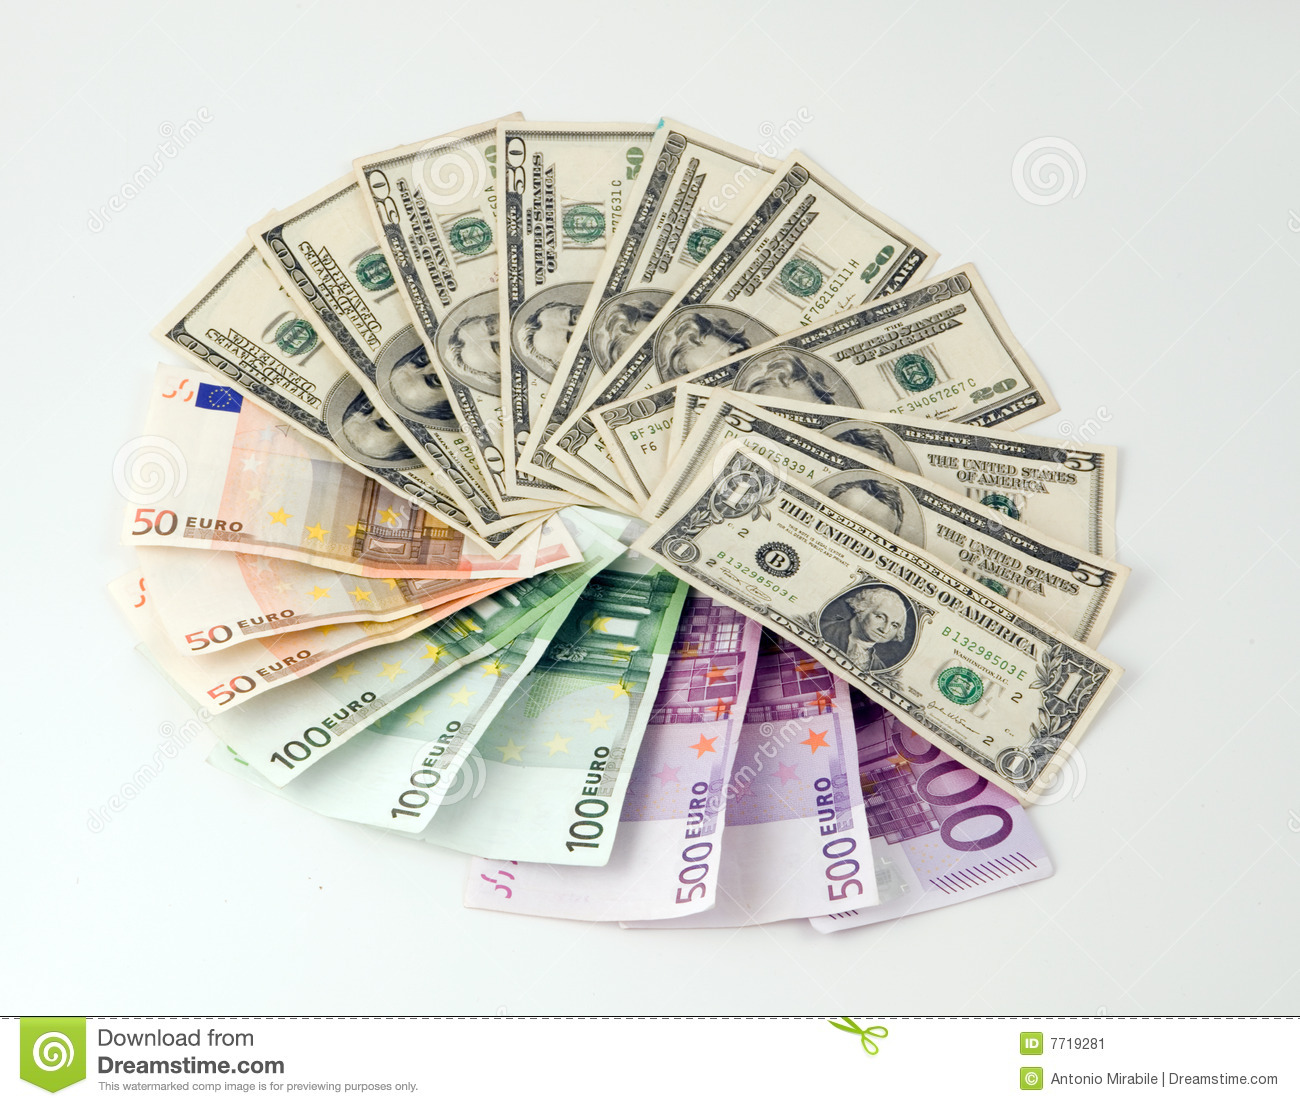 Us dollars to euros